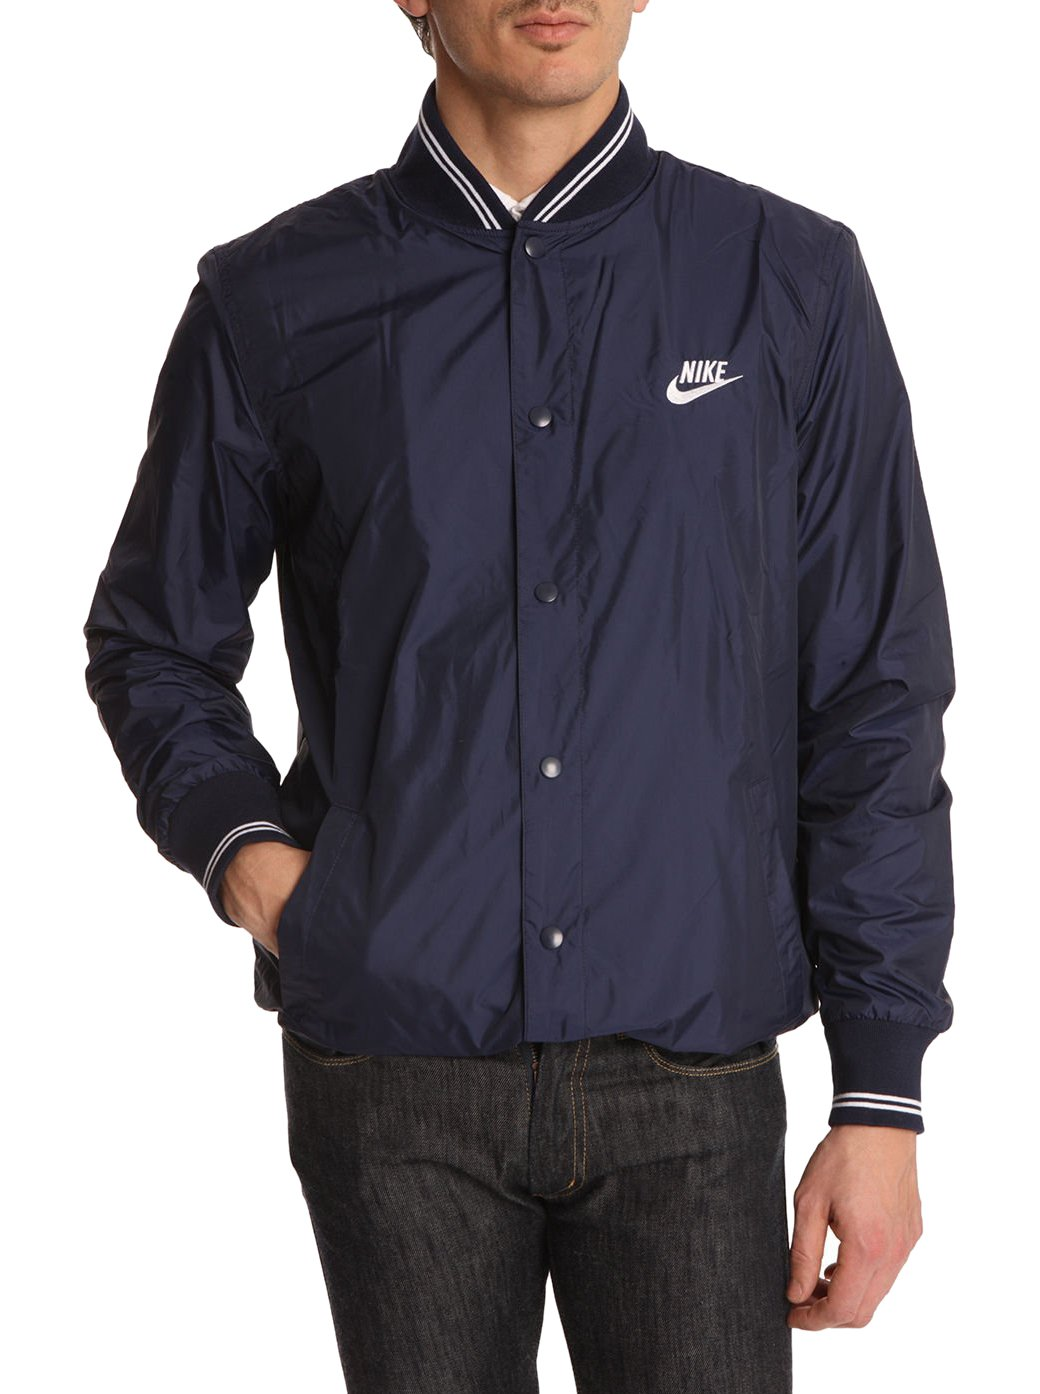 Nike Herren Jacke Oxford Coaches